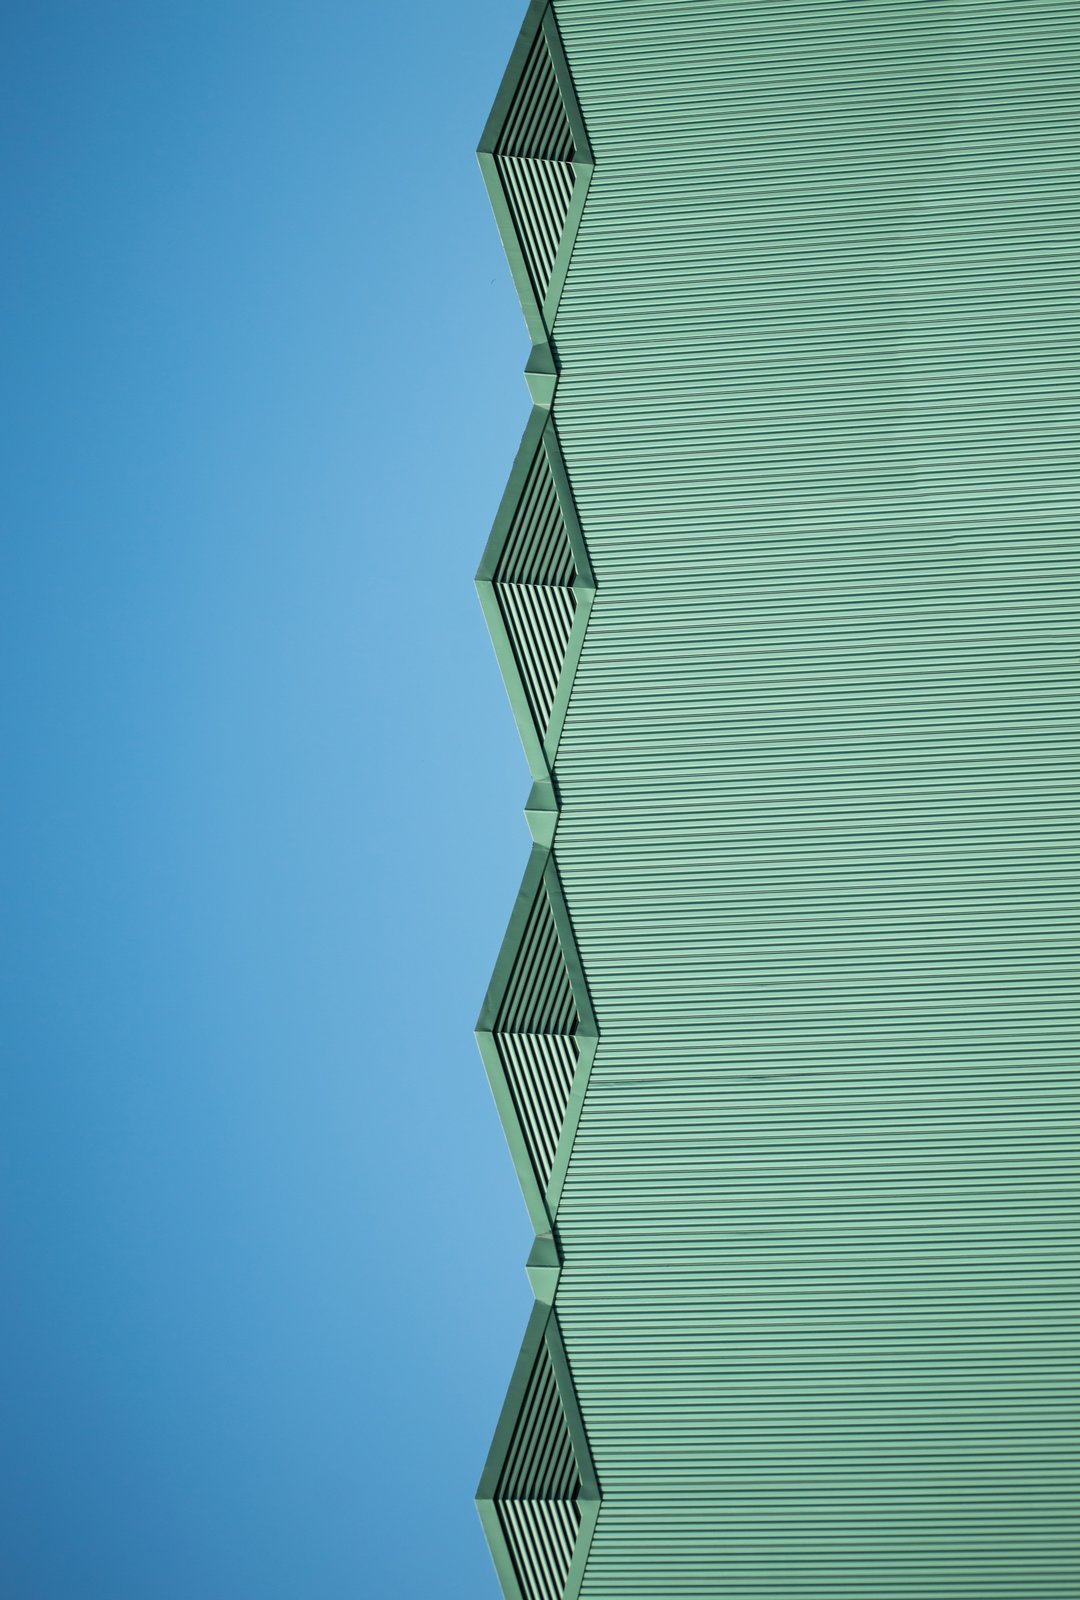 The Blue Green Mile.  Photo 8 of 16 in Nikola Olic's Dizzying Architectural Photography